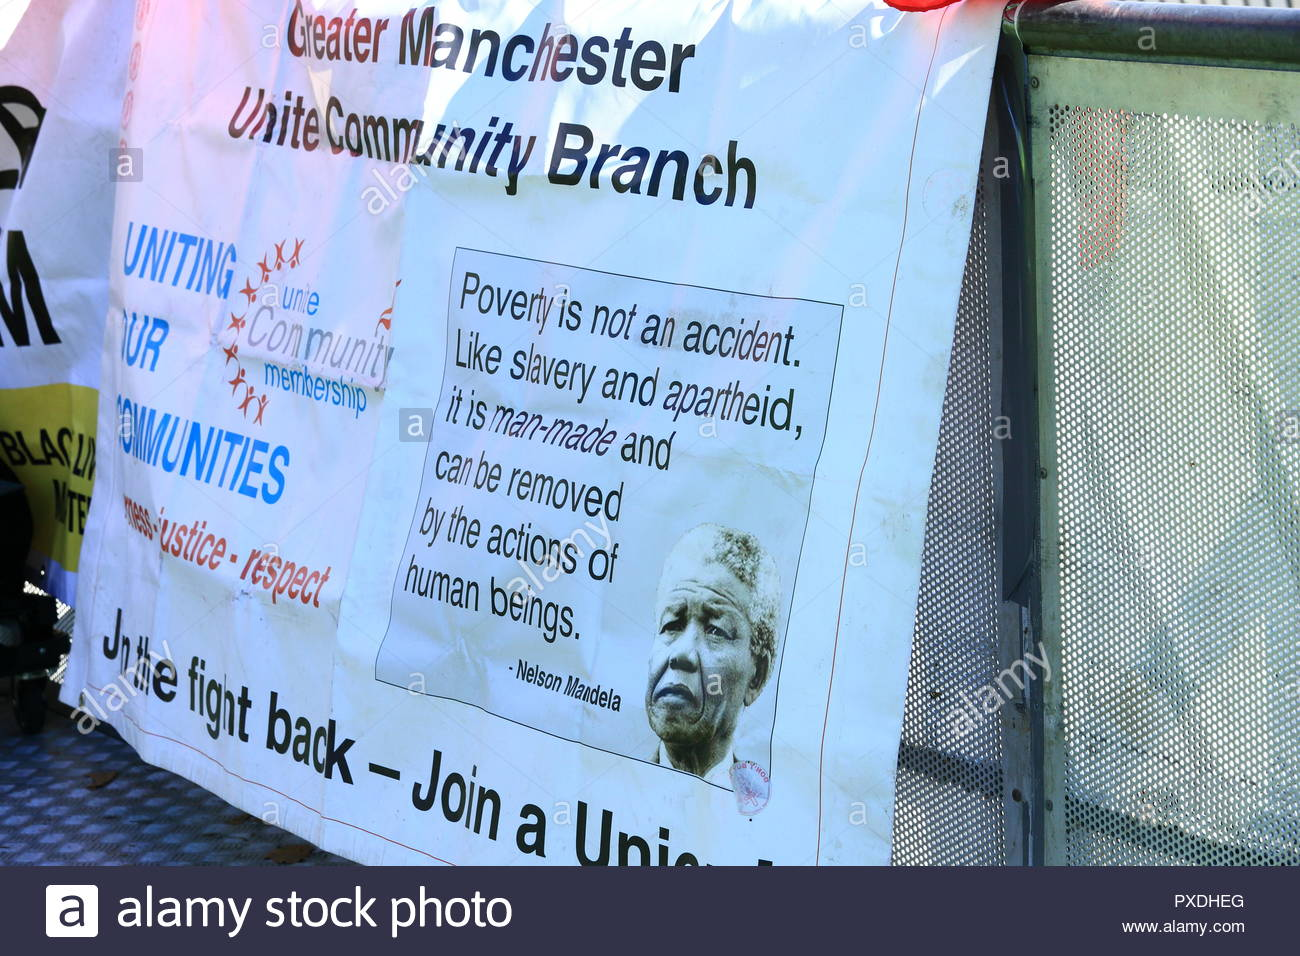 A Nelson Mandela Banner at the Stand Up To Racism Demonstration at Manchester Piccadilly Gardens Manchester UK. Afternoon. - Stock Image